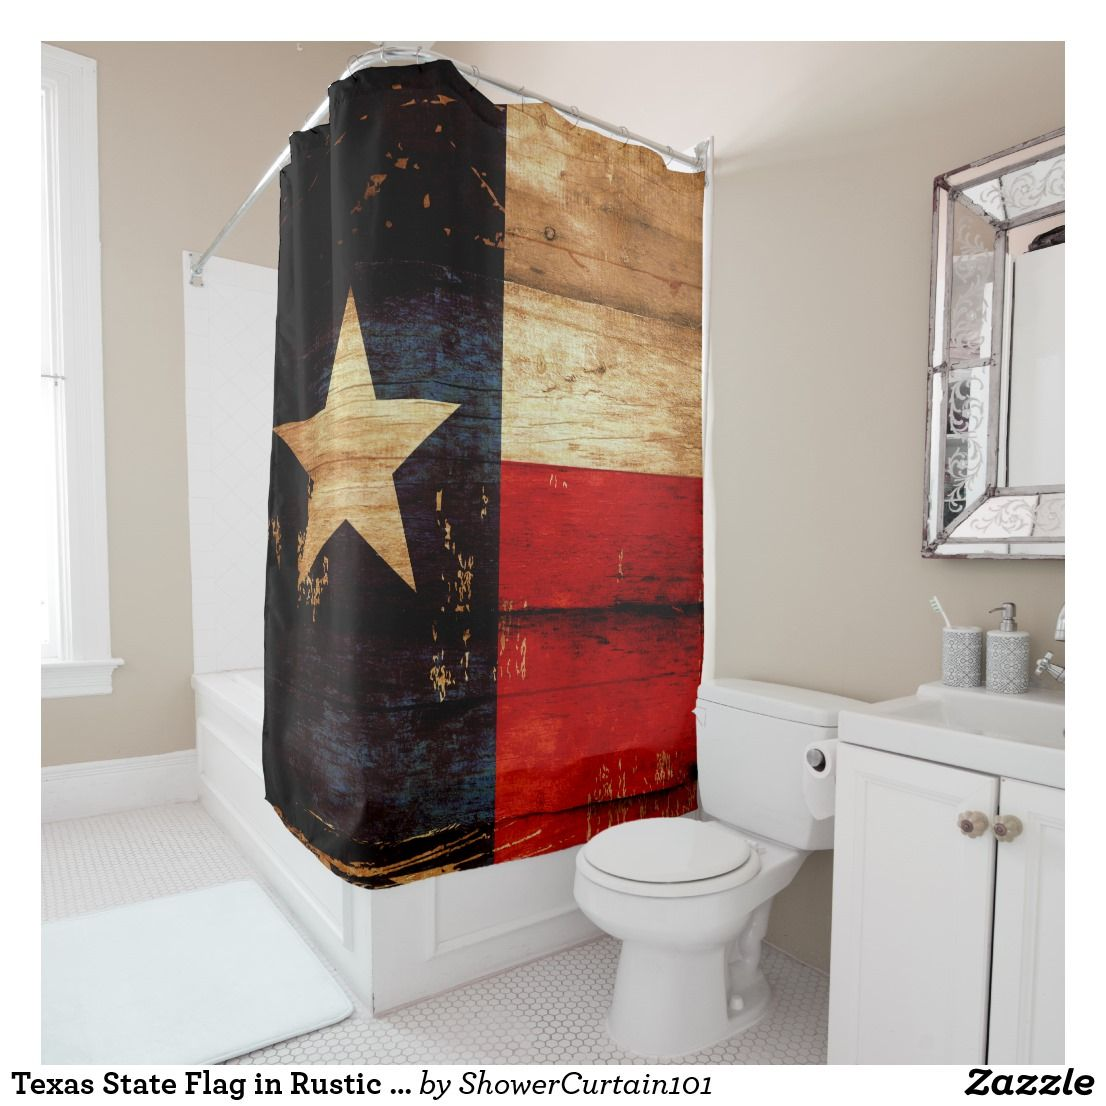 Texas State Flag In Rustic Wooden Grunge Look Shower Curtain Zazzle Com In 2021 Texas Bathroom Decor Texas Home Decor Shower Curtain Texas longhorn bathroom decor